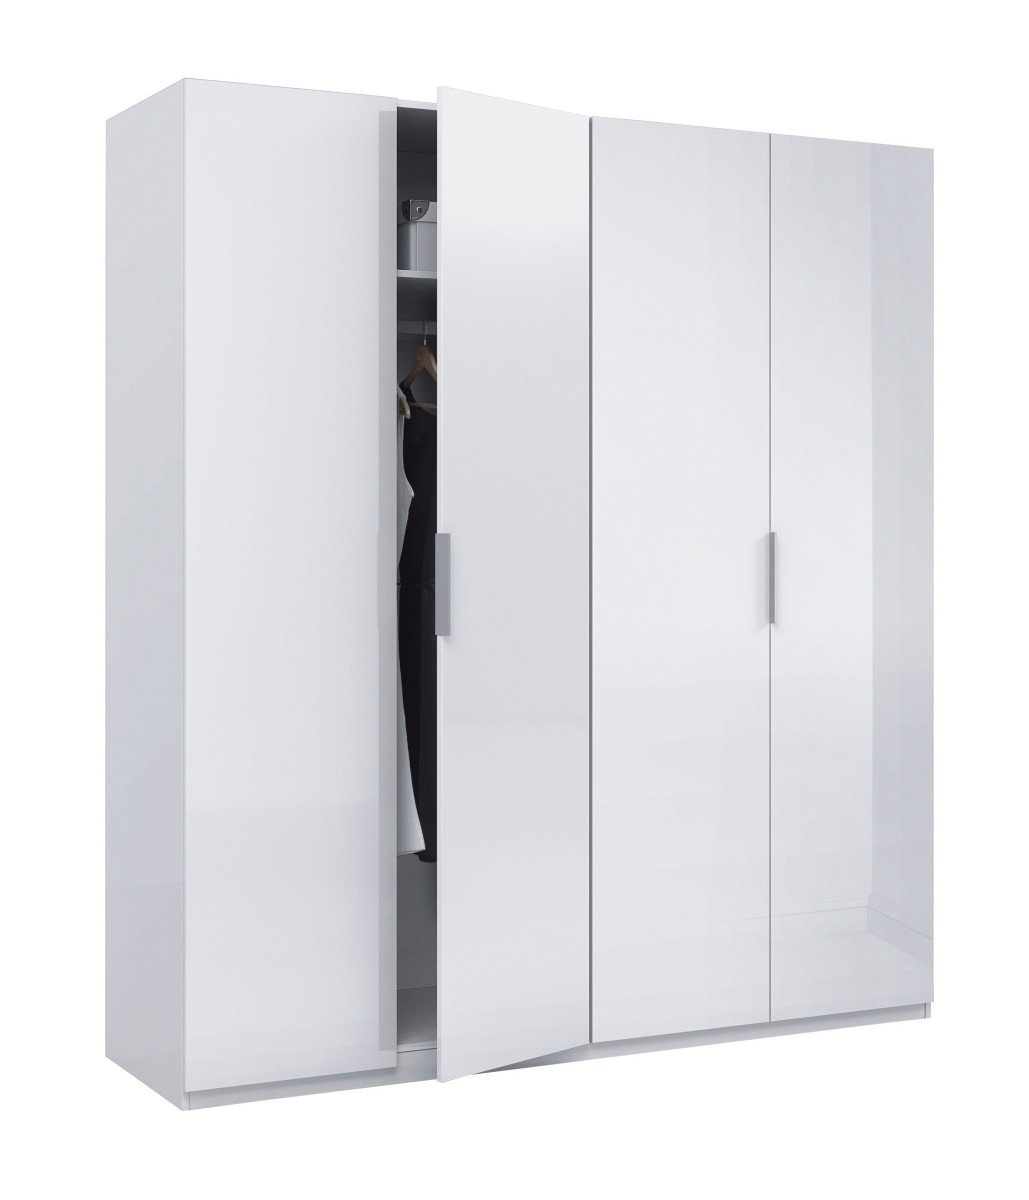 Stunning Bedroom Arctic Wardrobe 4 Door High Shine White